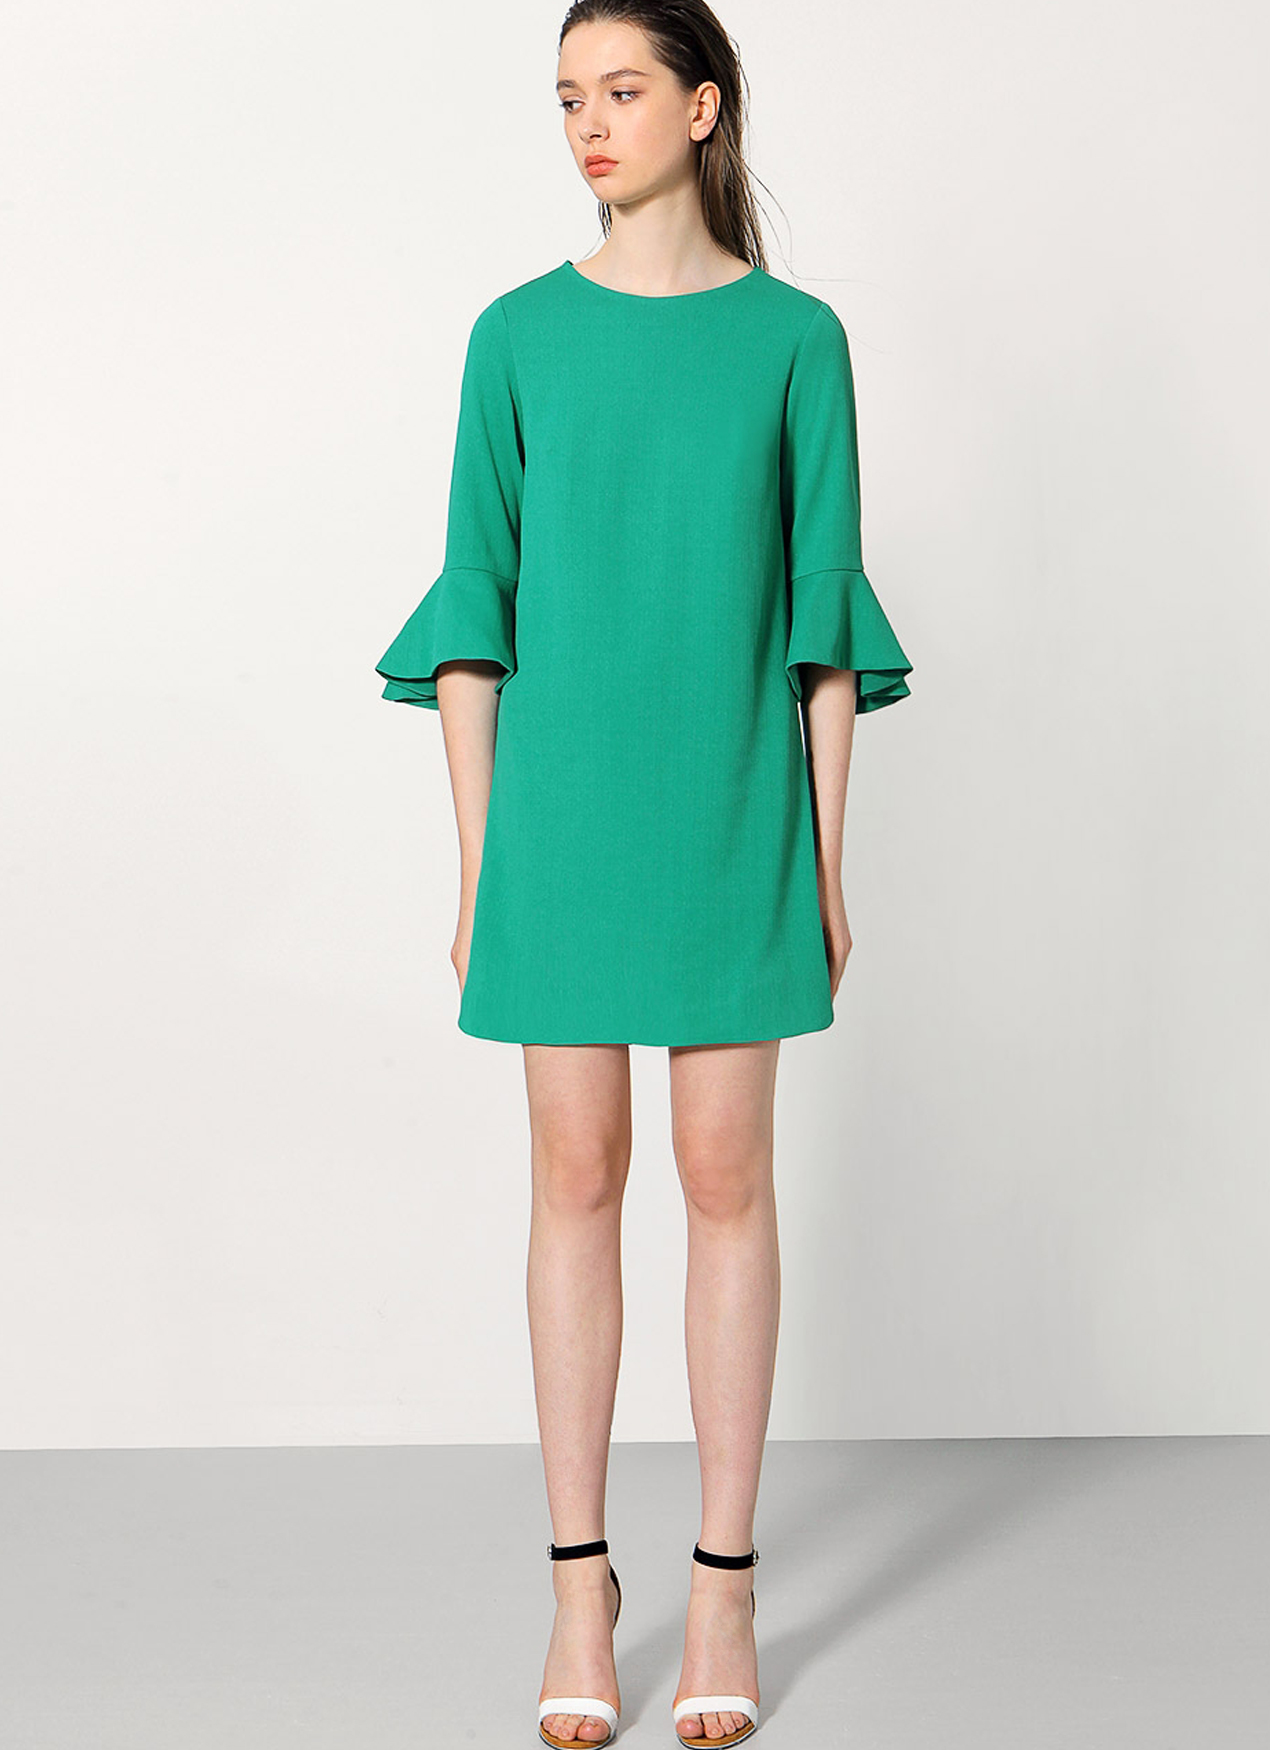 Saturday Club Green Bell Cuff Long Sleeved Shift Dress